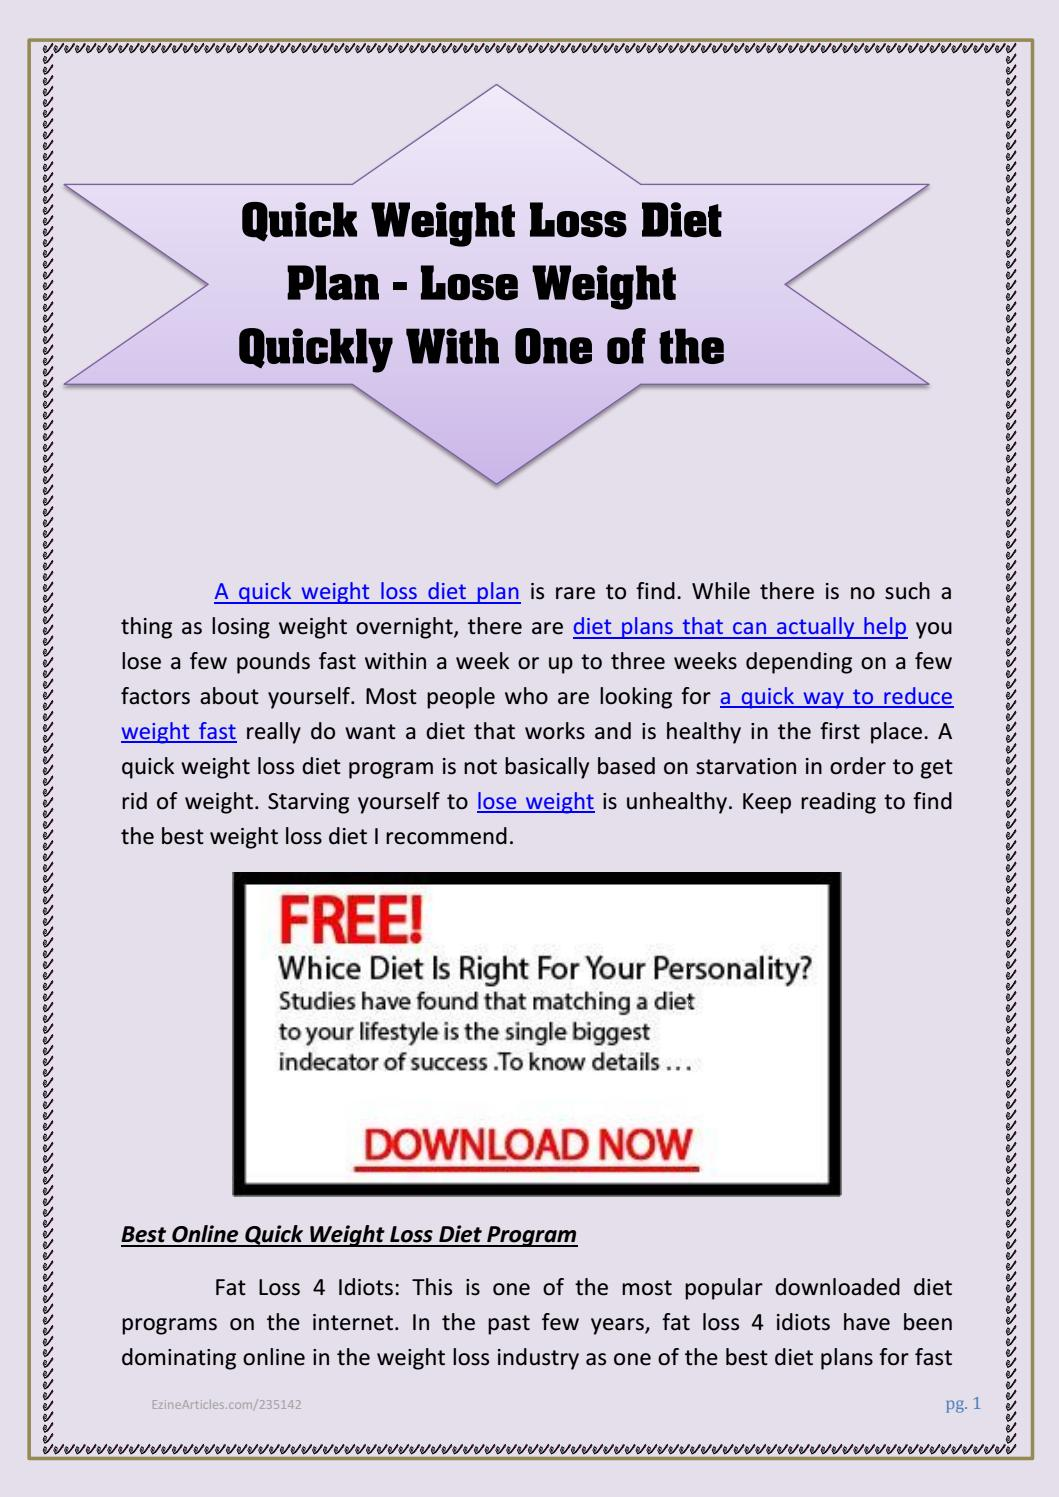 Diet Plan To Lose Weight Fast Quick Weight Loss Diet Plan Lose Weight Quickly With One Of The